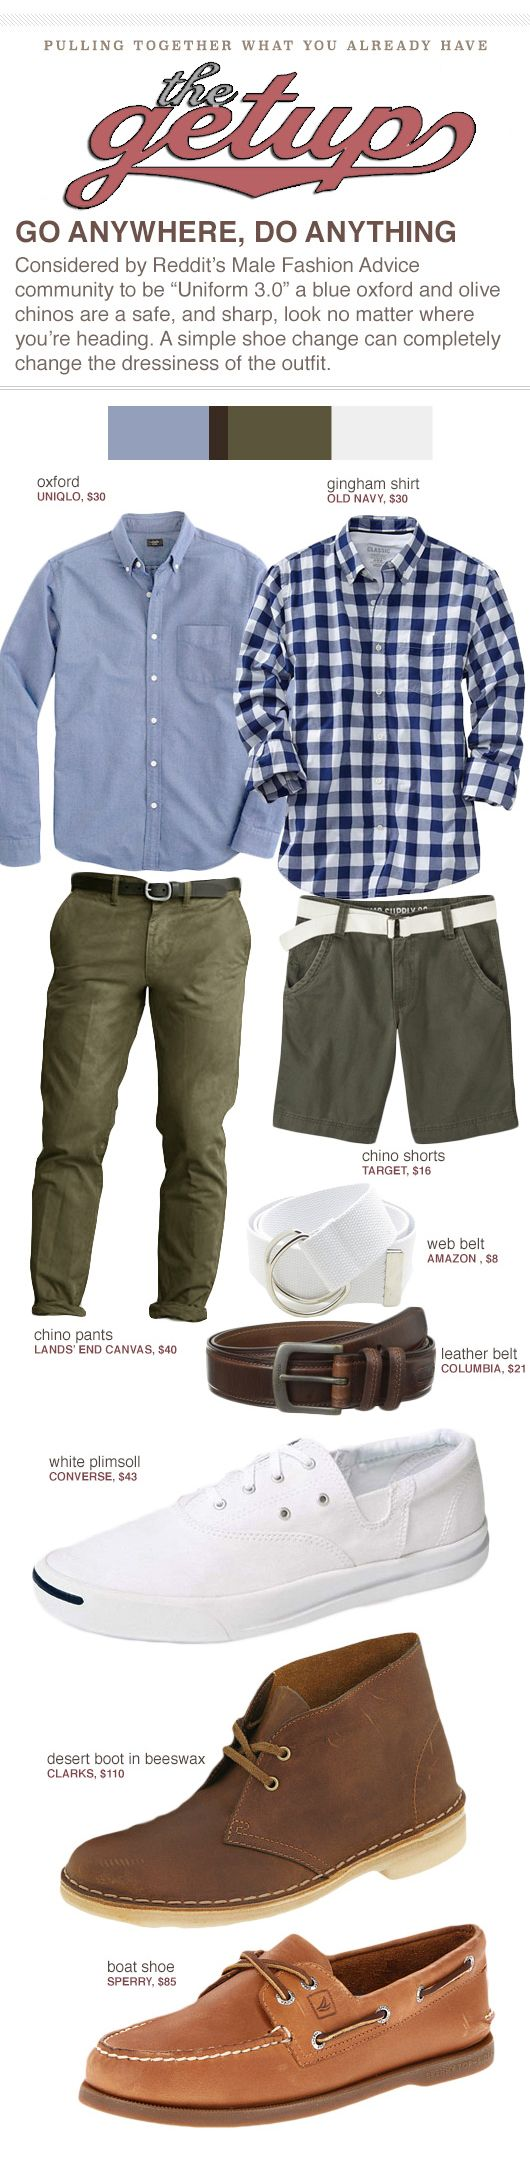 """The Getup: Go Anywhere, Do Anything - Considered by Reddit's Male Fashion Advice community to be """"Uniform 3.0"""" a blue oxford and olive chinos are a safe, and sharp, look no matter where you're heading. A simple shoe change can completely change the dressiness of the outfit."""